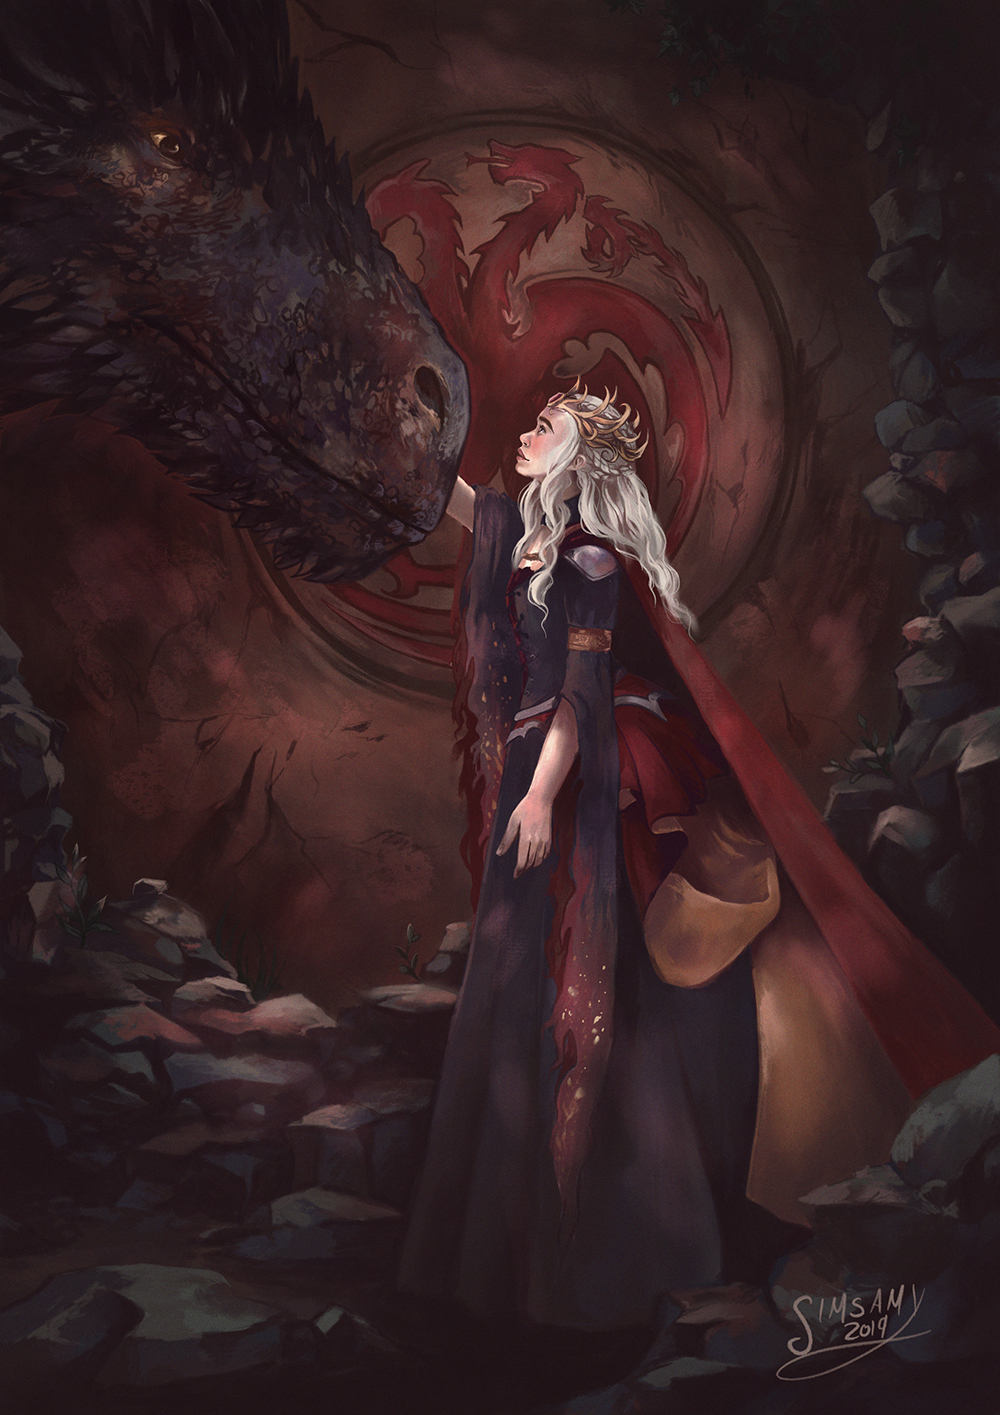 Daenerys Targaryen-The Dragon Queen